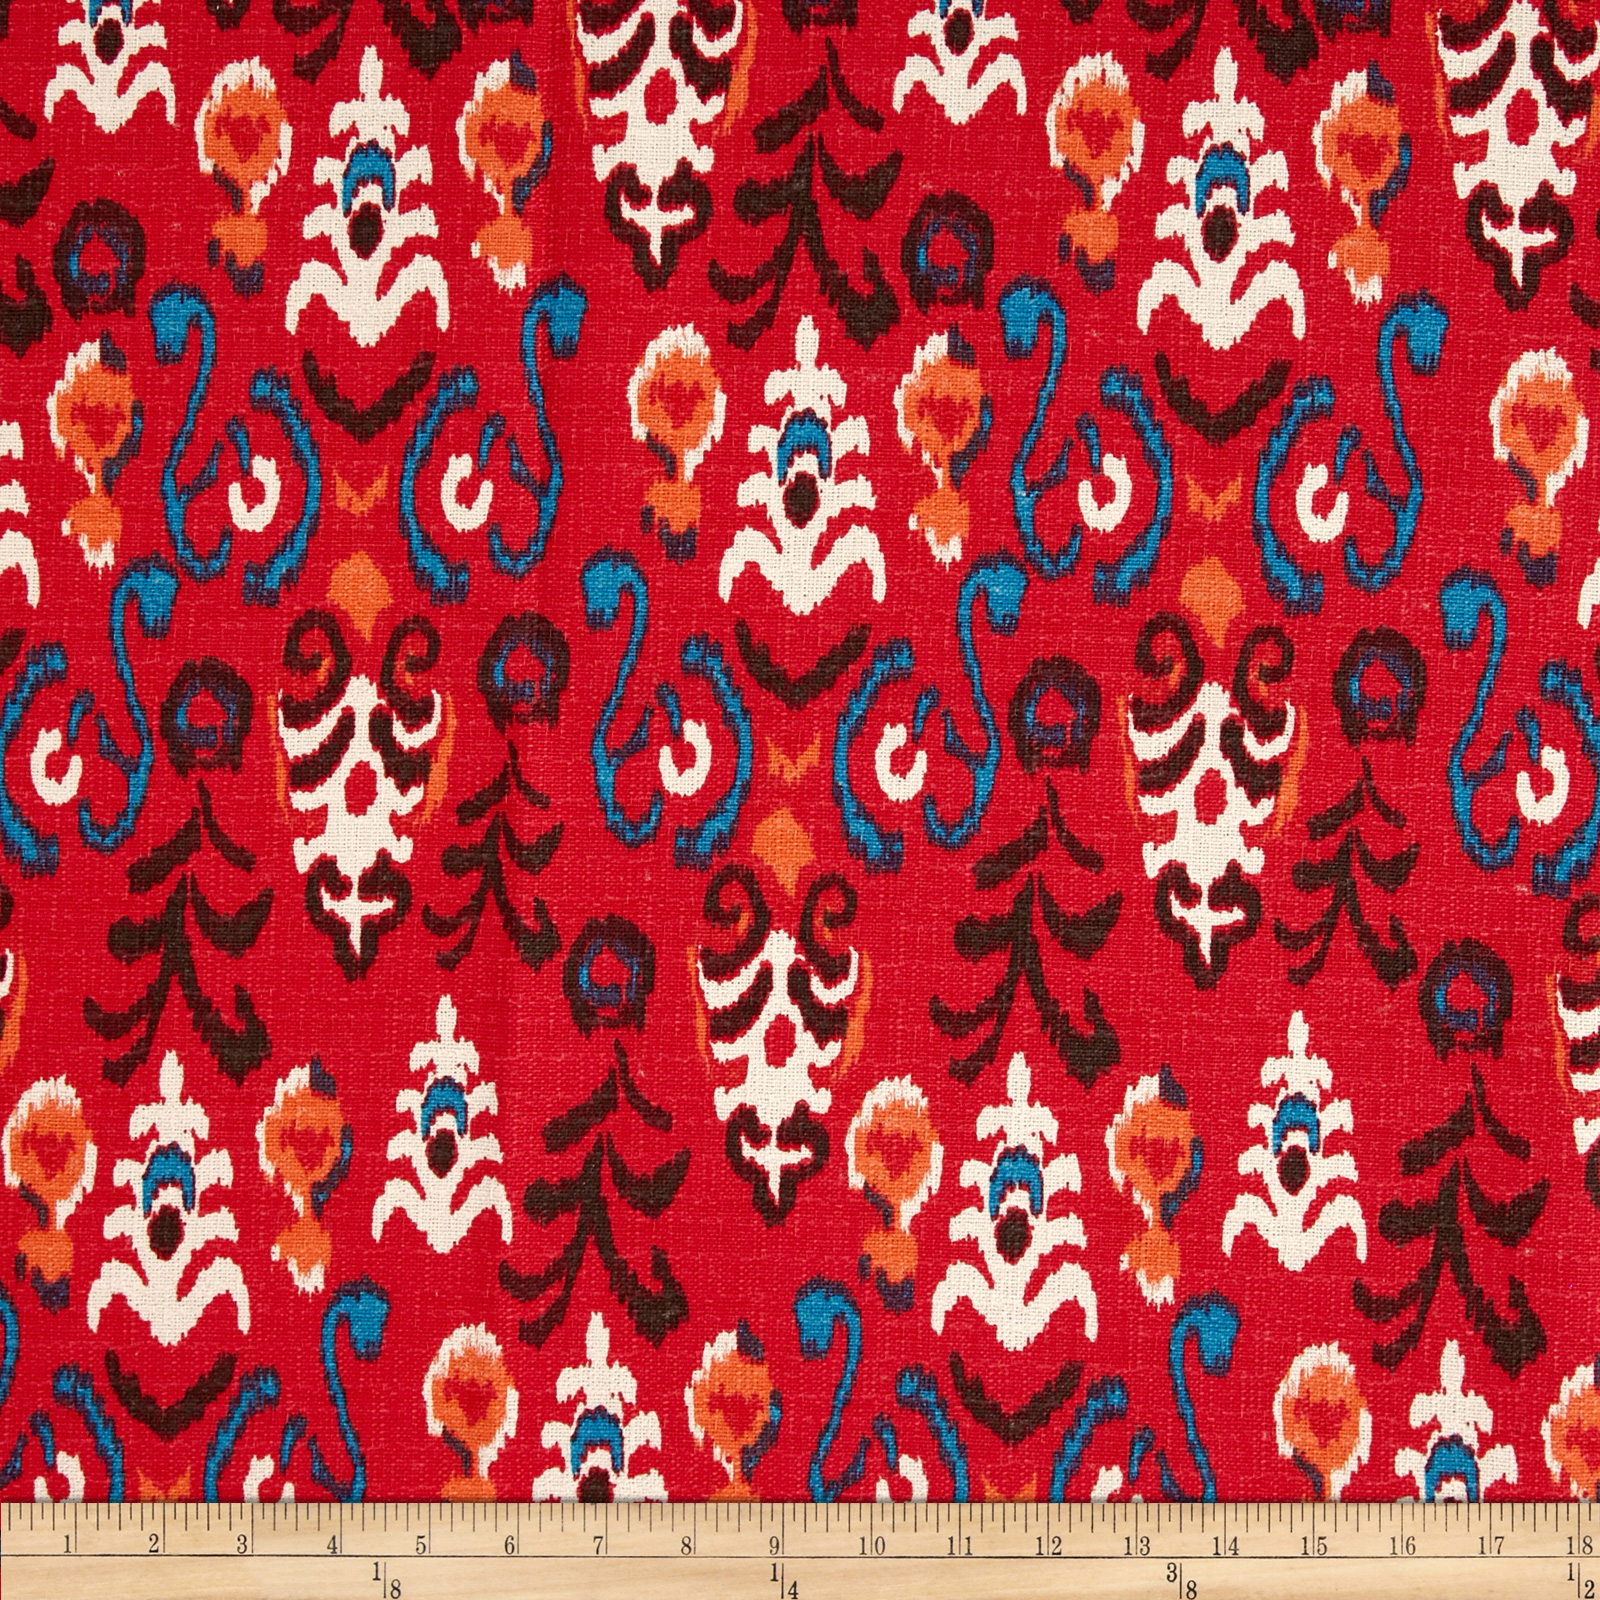 Premier Prints Neda Birch Poppy Fabric